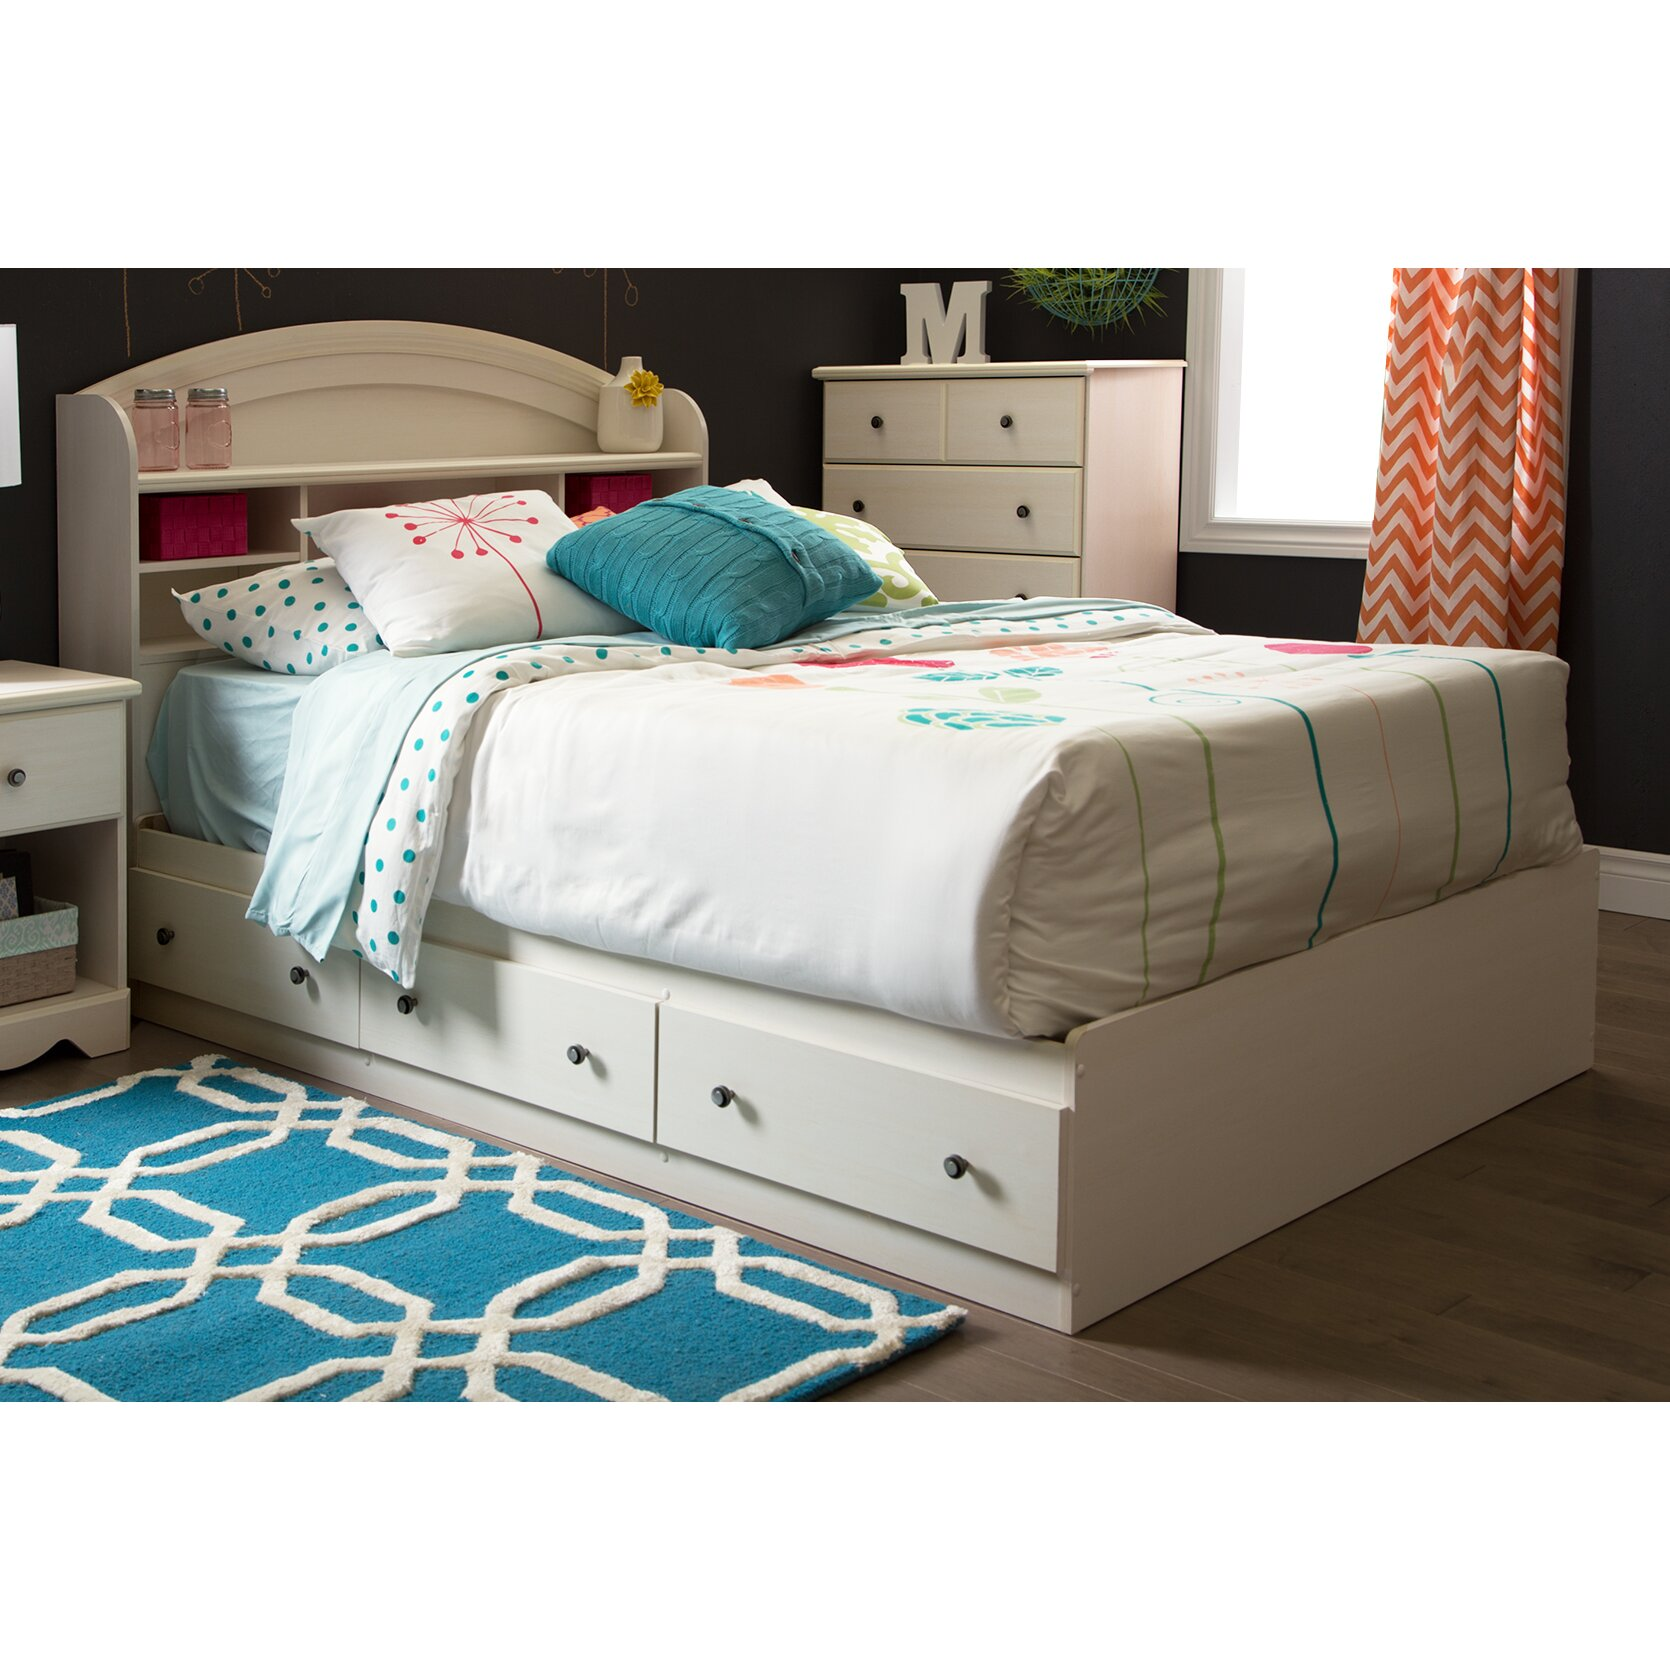 Country Bedroom Sets: South Shore Country Poetry Platform Customizable Bedroom